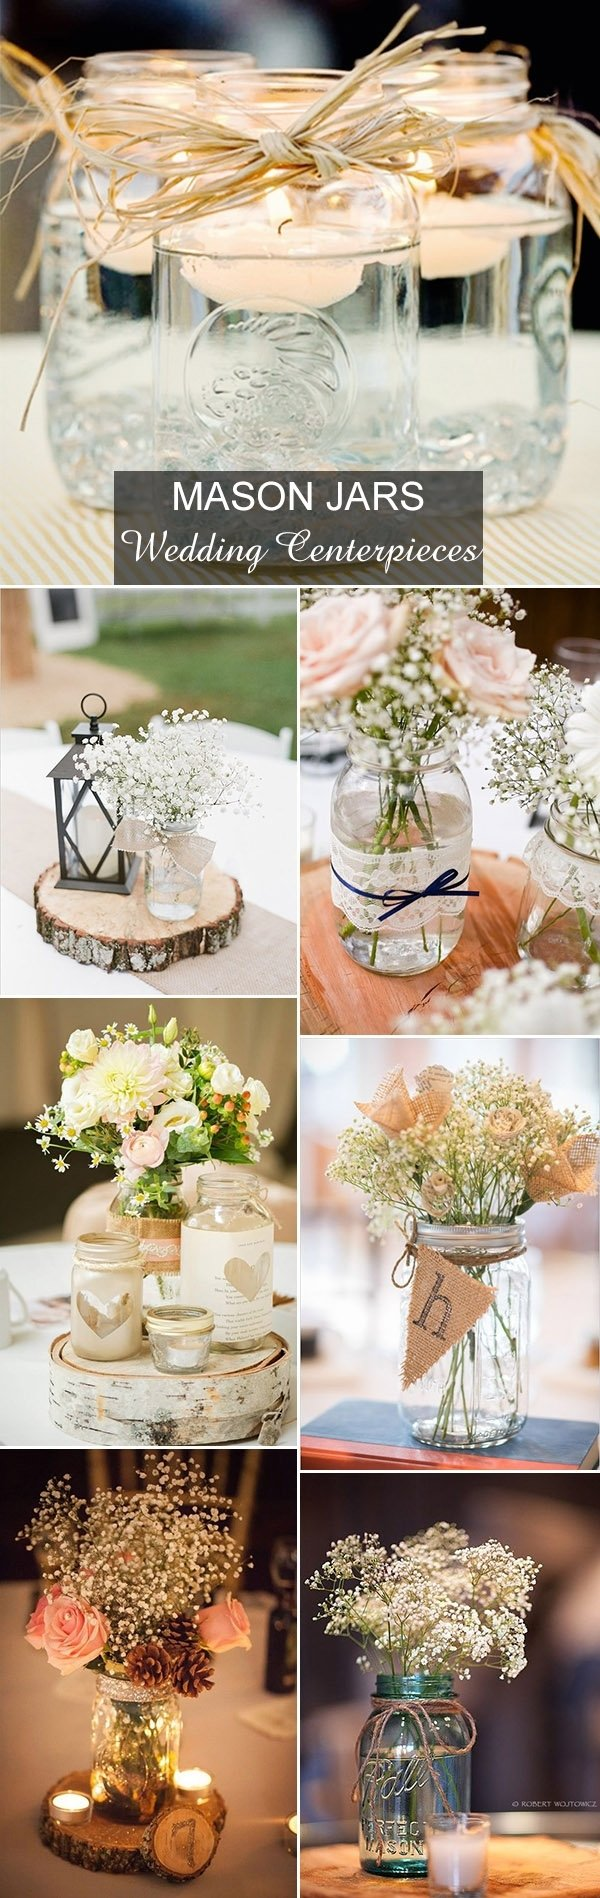 10 Lovable Mason Jar Ideas For Weddings rustic wedding ideas 30 ways to use mason jars 5 2020